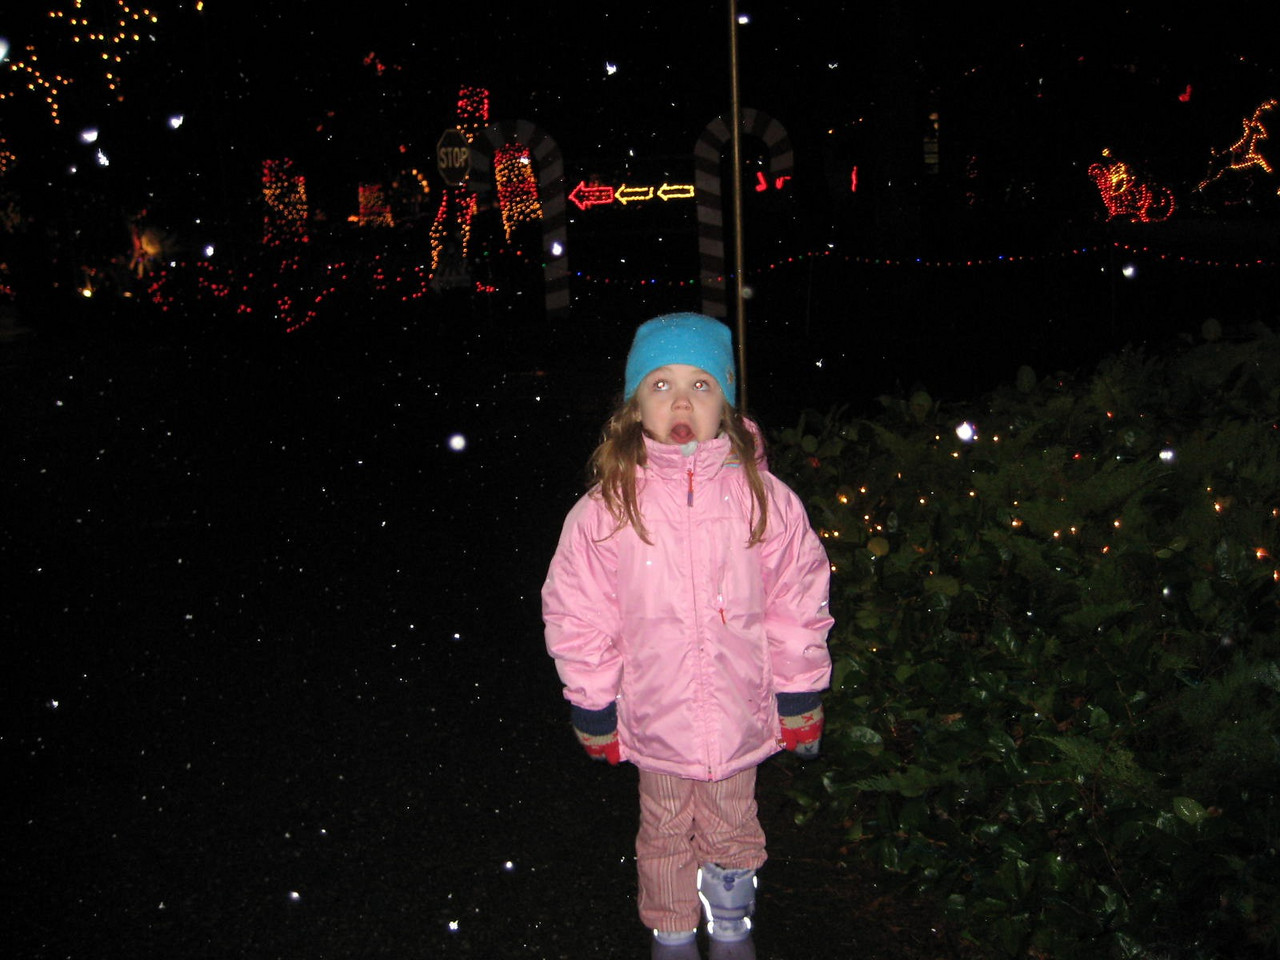 Seeing the Christmas Lights show at Warm Beach (Dec. '08) - Kimber catching snowflakes on her tongue.